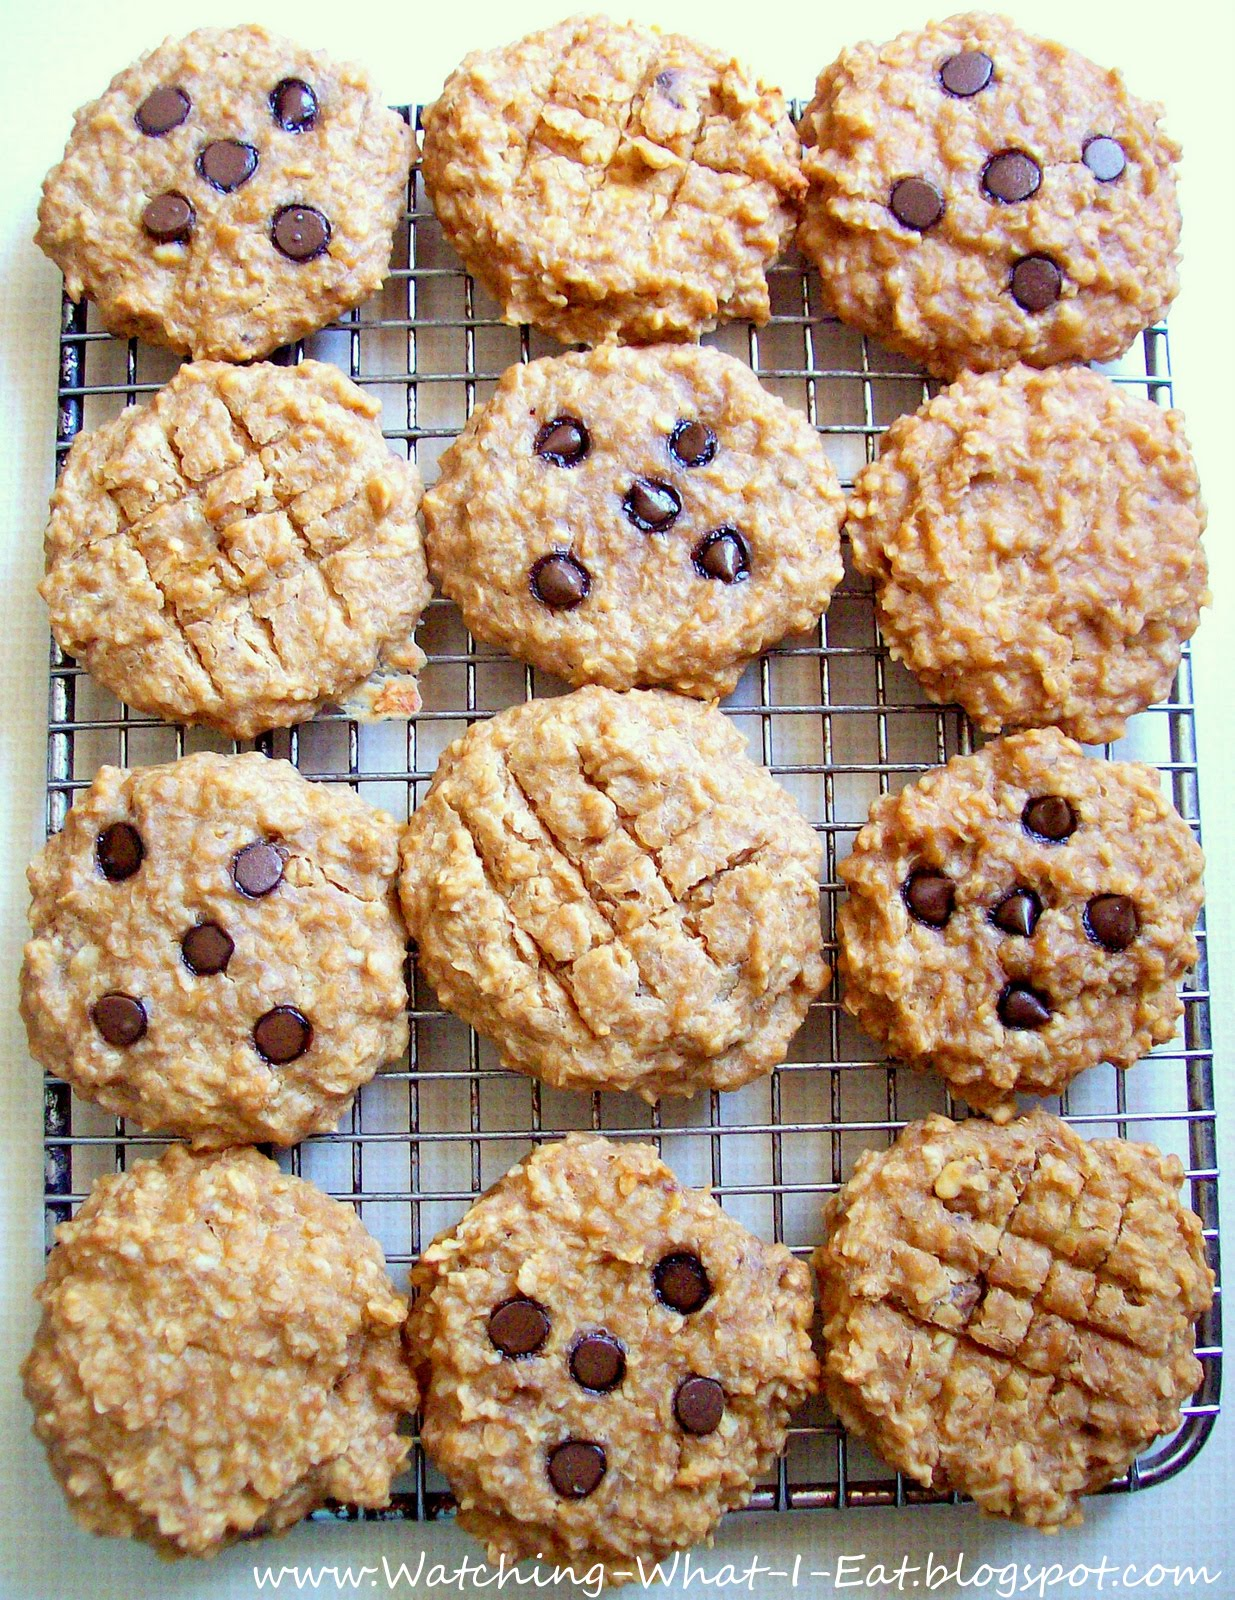 Oatmeal cookies recipes without flour